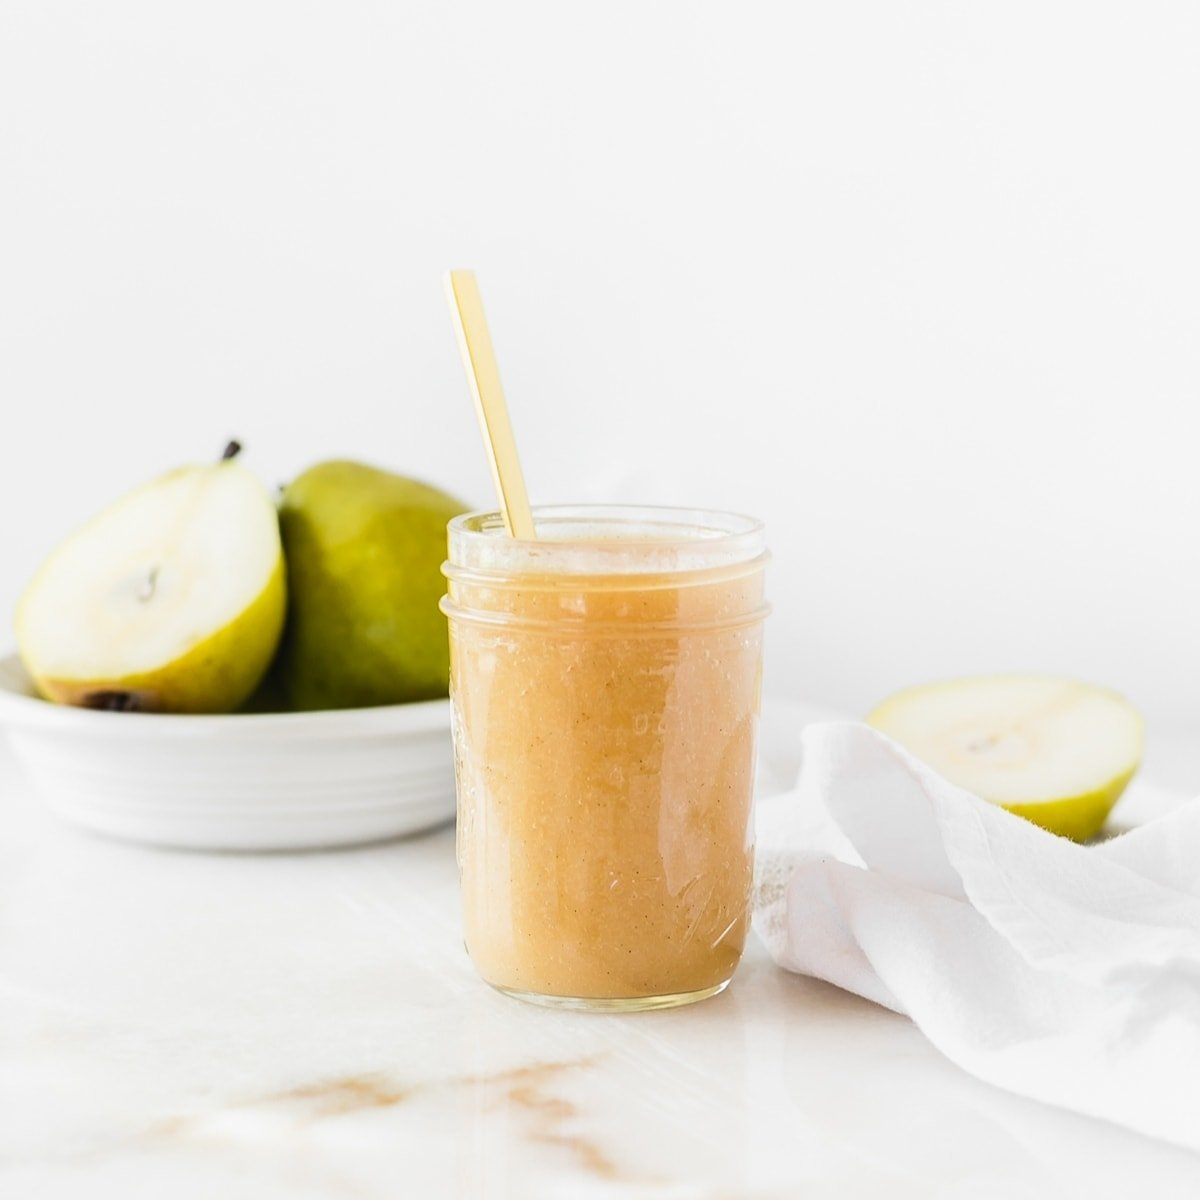 Naturally sweetened slow cooker vanilla bean pear butter is the perfect way to use up a bunch of pears! It's easy, low sugar and delicious with everything from oatmeal and pancakes to pork loin and cheese platters. (Includes canning instructions.) gluten-free, nut-free, dairy-free